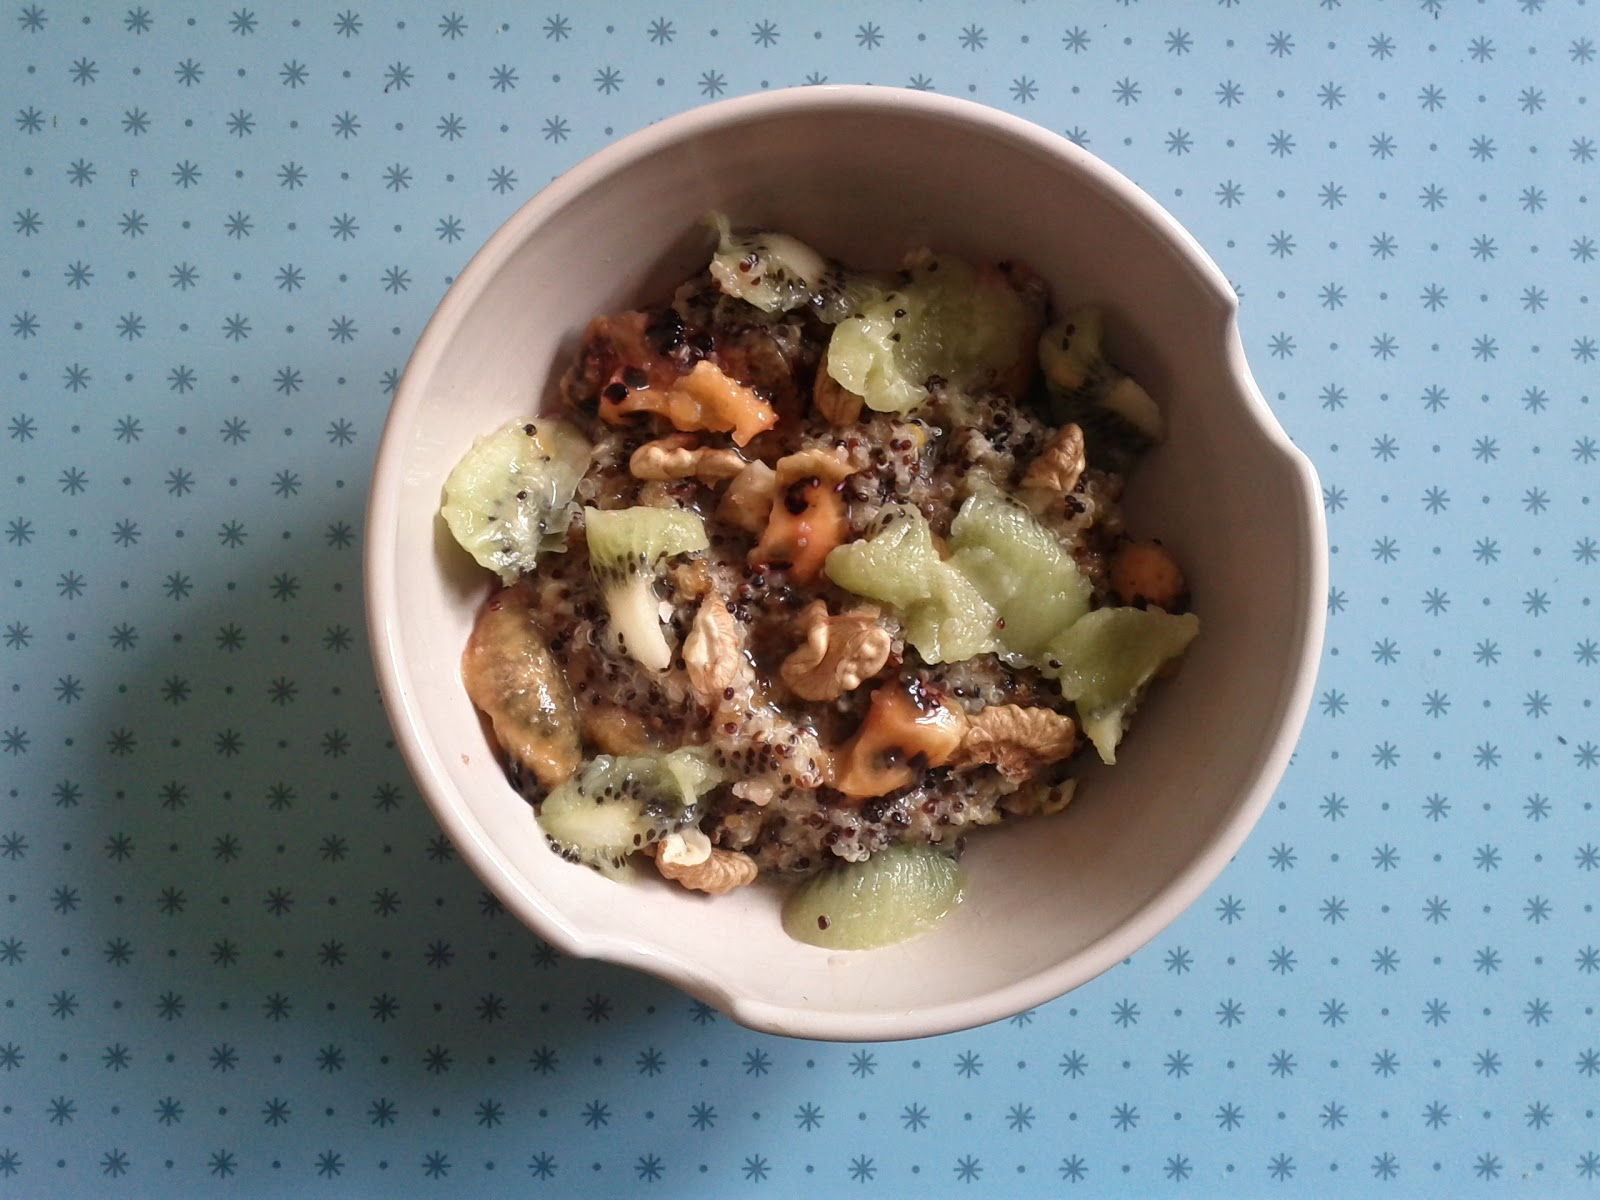 Auckland food blog recipe quinoa porridge this recipe for quinoa porridge is adapted from a book called vegan soul kitchen there are plenty of variations around the internet but this one works for forumfinder Choice Image